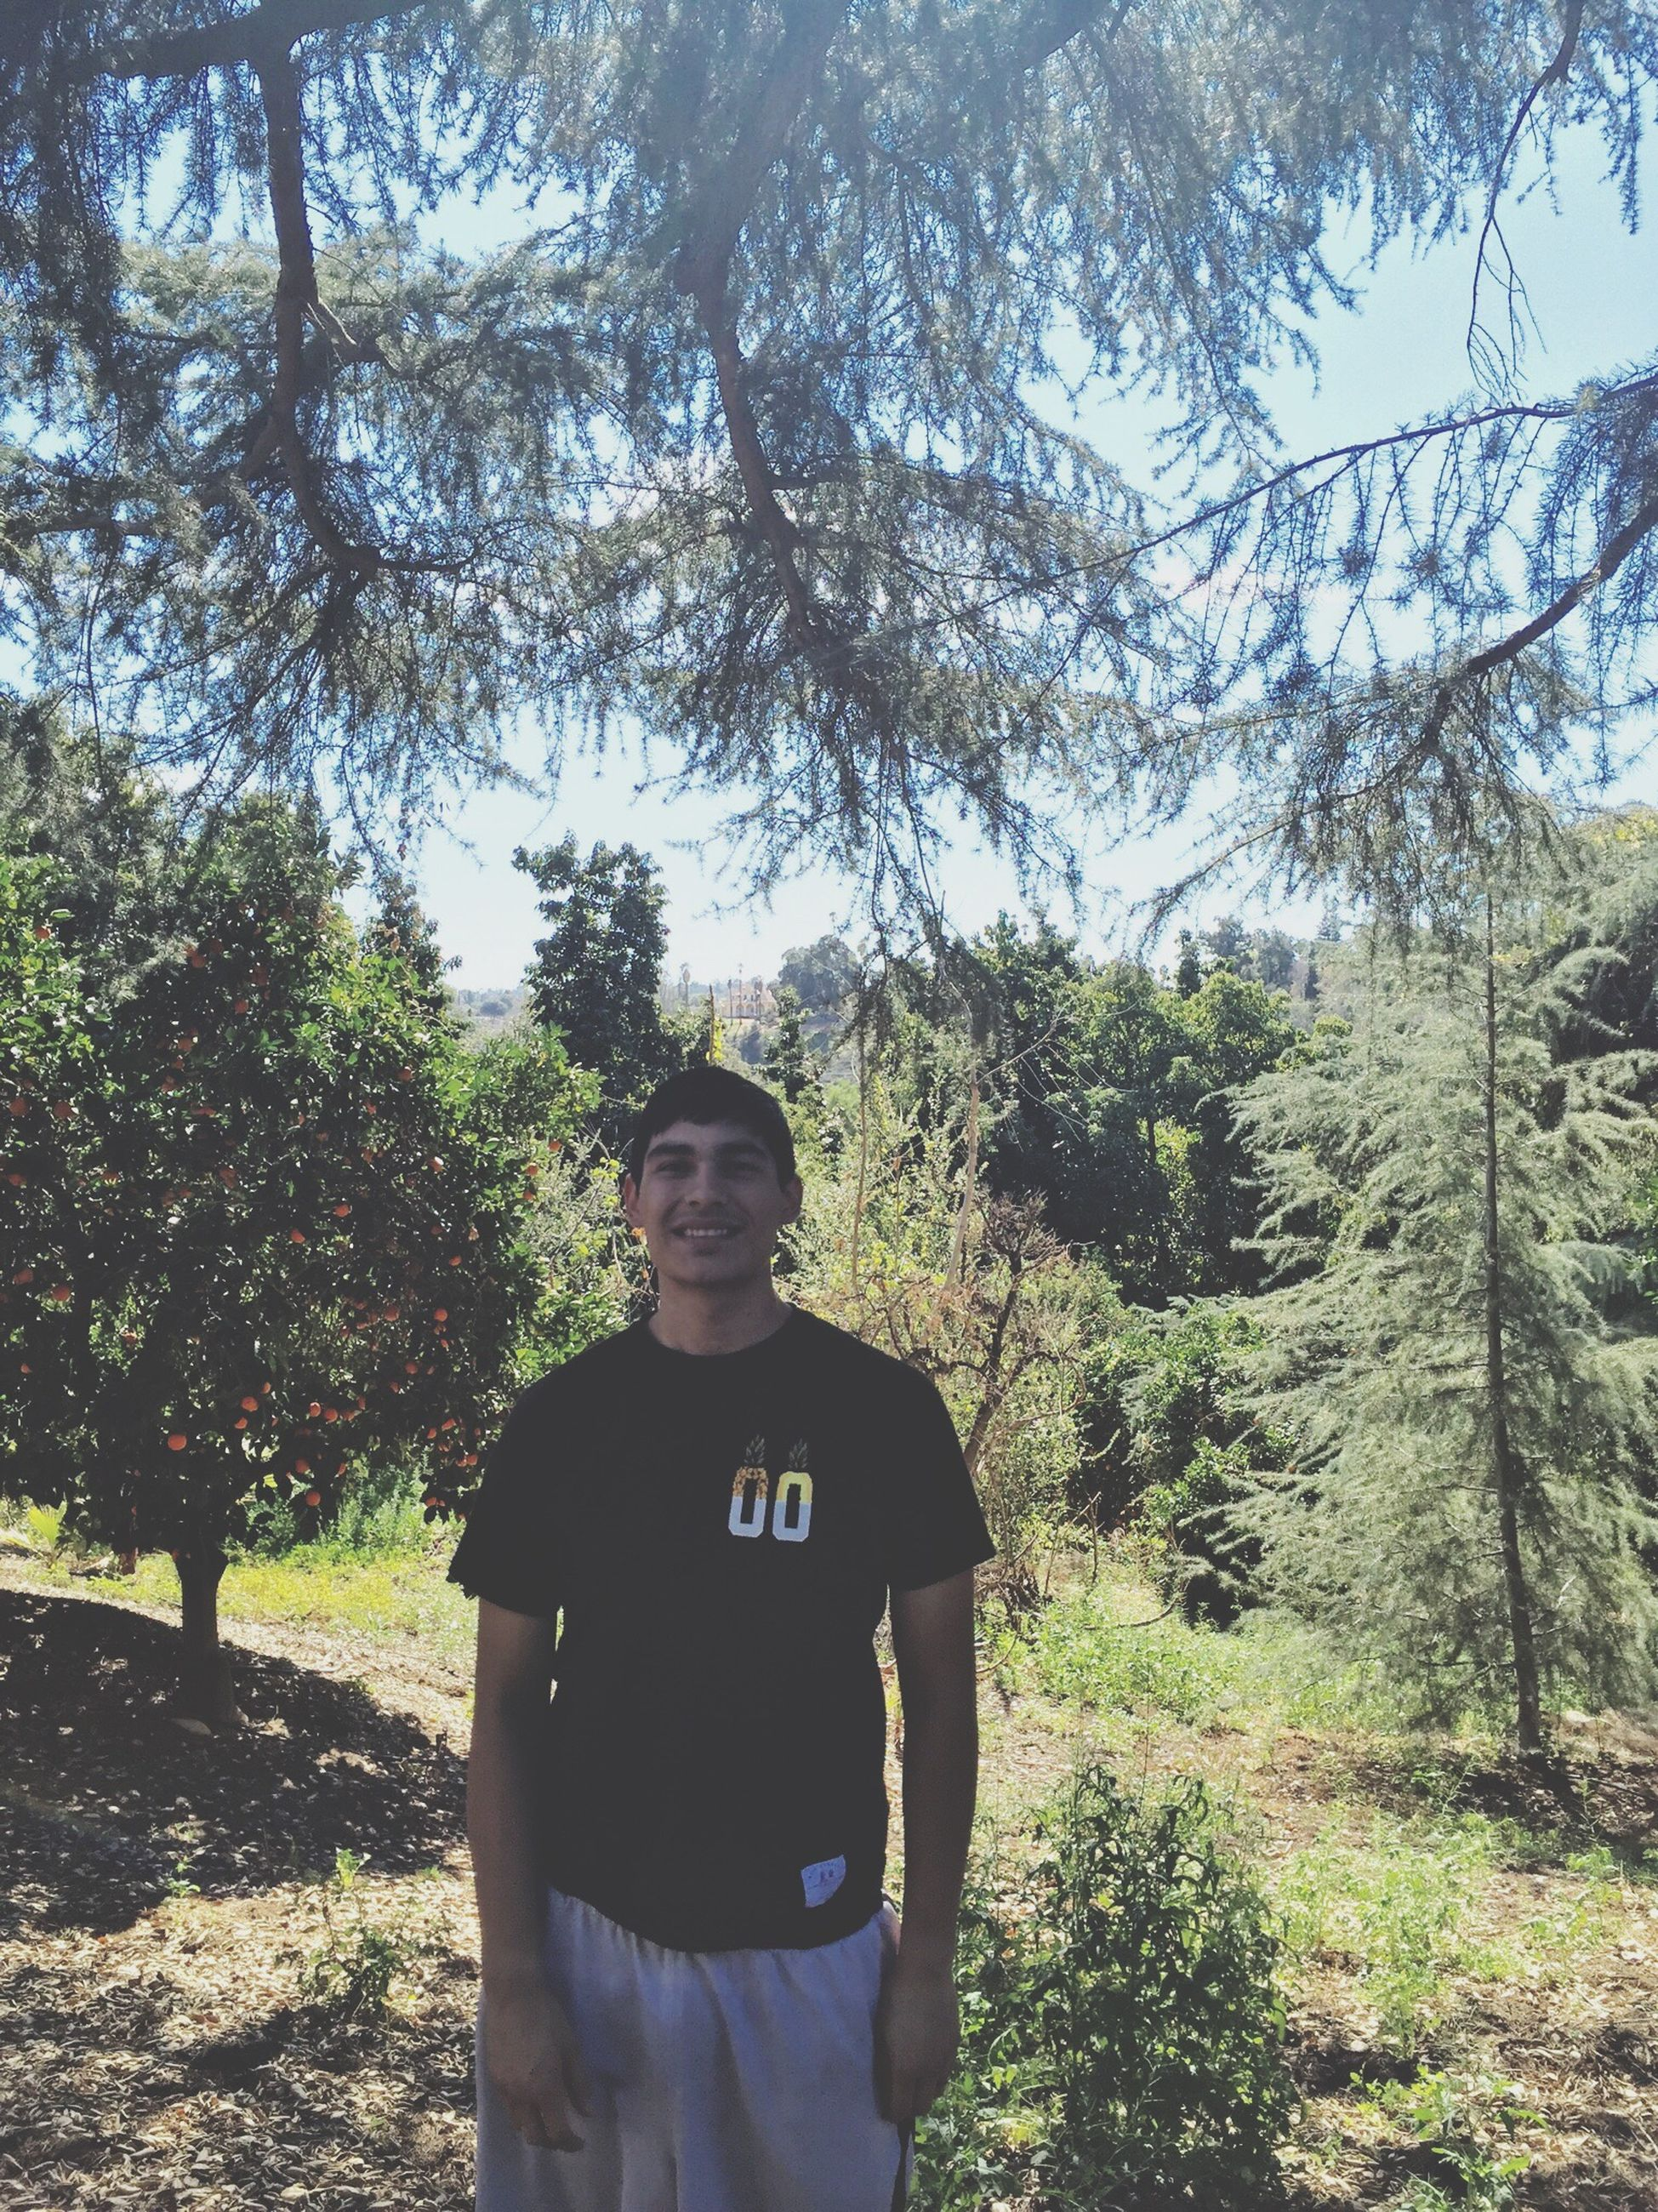 tree, leisure activity, lifestyles, standing, young adult, person, casual clothing, front view, outdoors